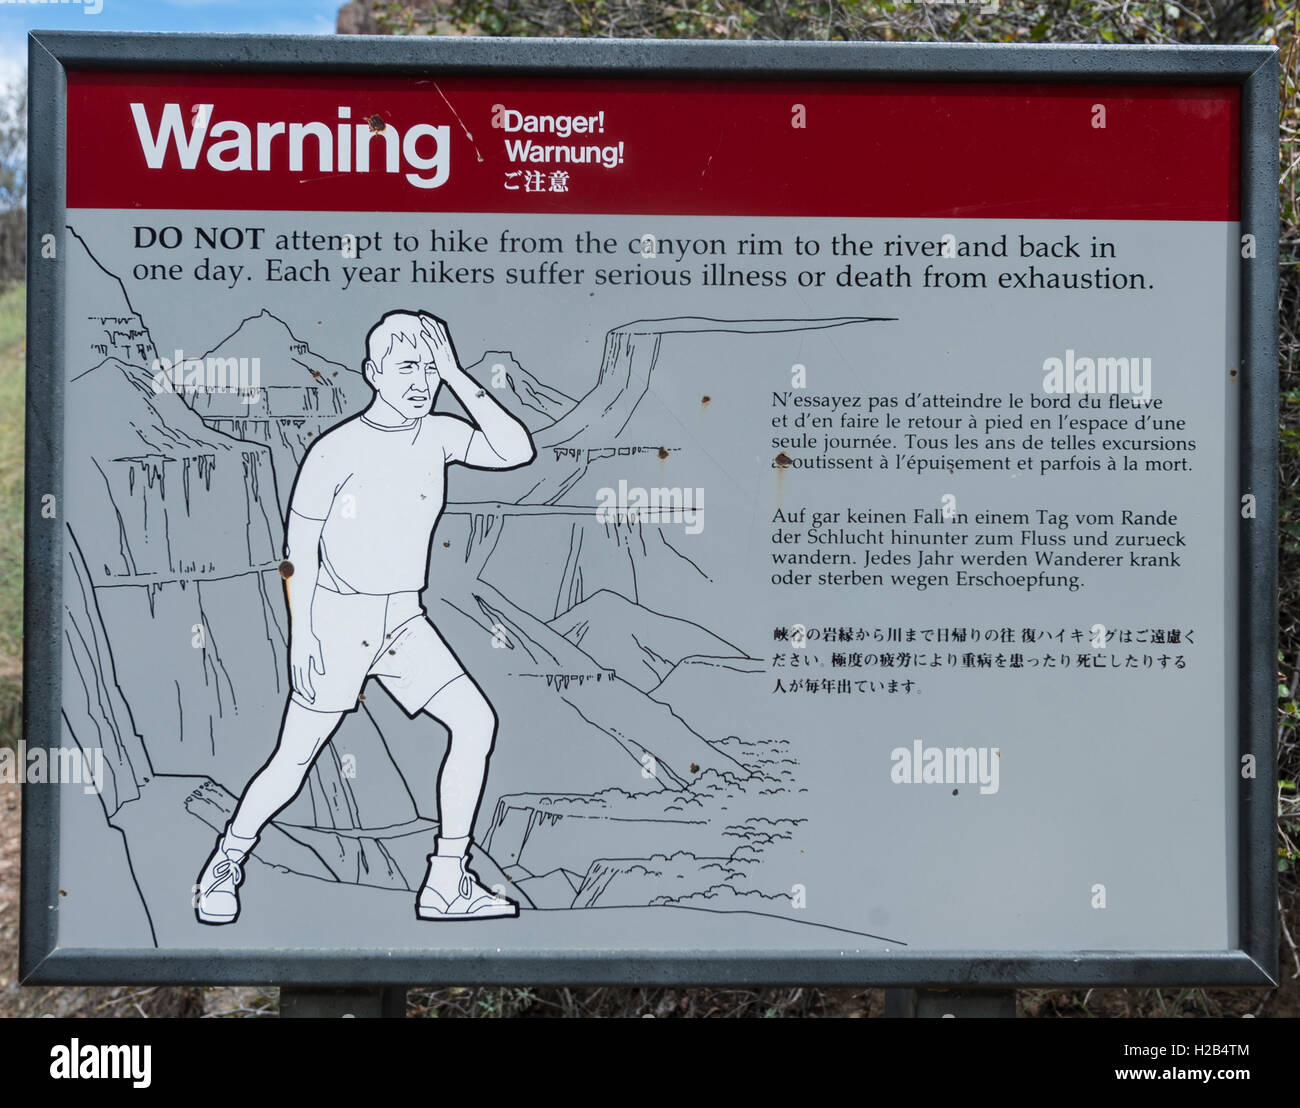 Warning Sign for hikers, warning exhaustion and heat, Grand Canyon National Park, Arizona, USA - Stock Image